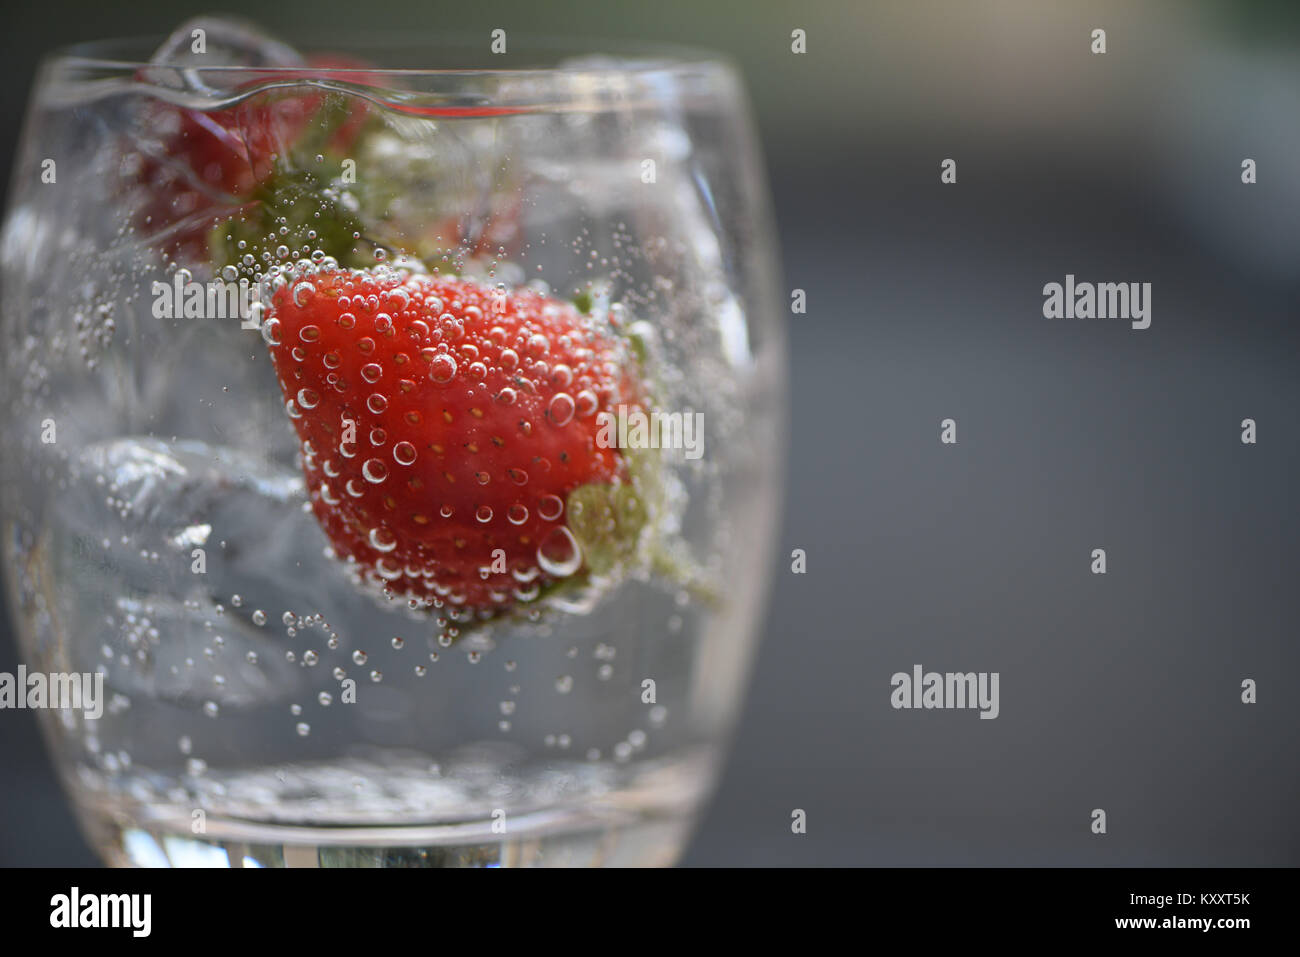 Aliments et boissons rafraîchissantes close up macro photographie image de fruit rouge fraise dans un verre Photo Stock